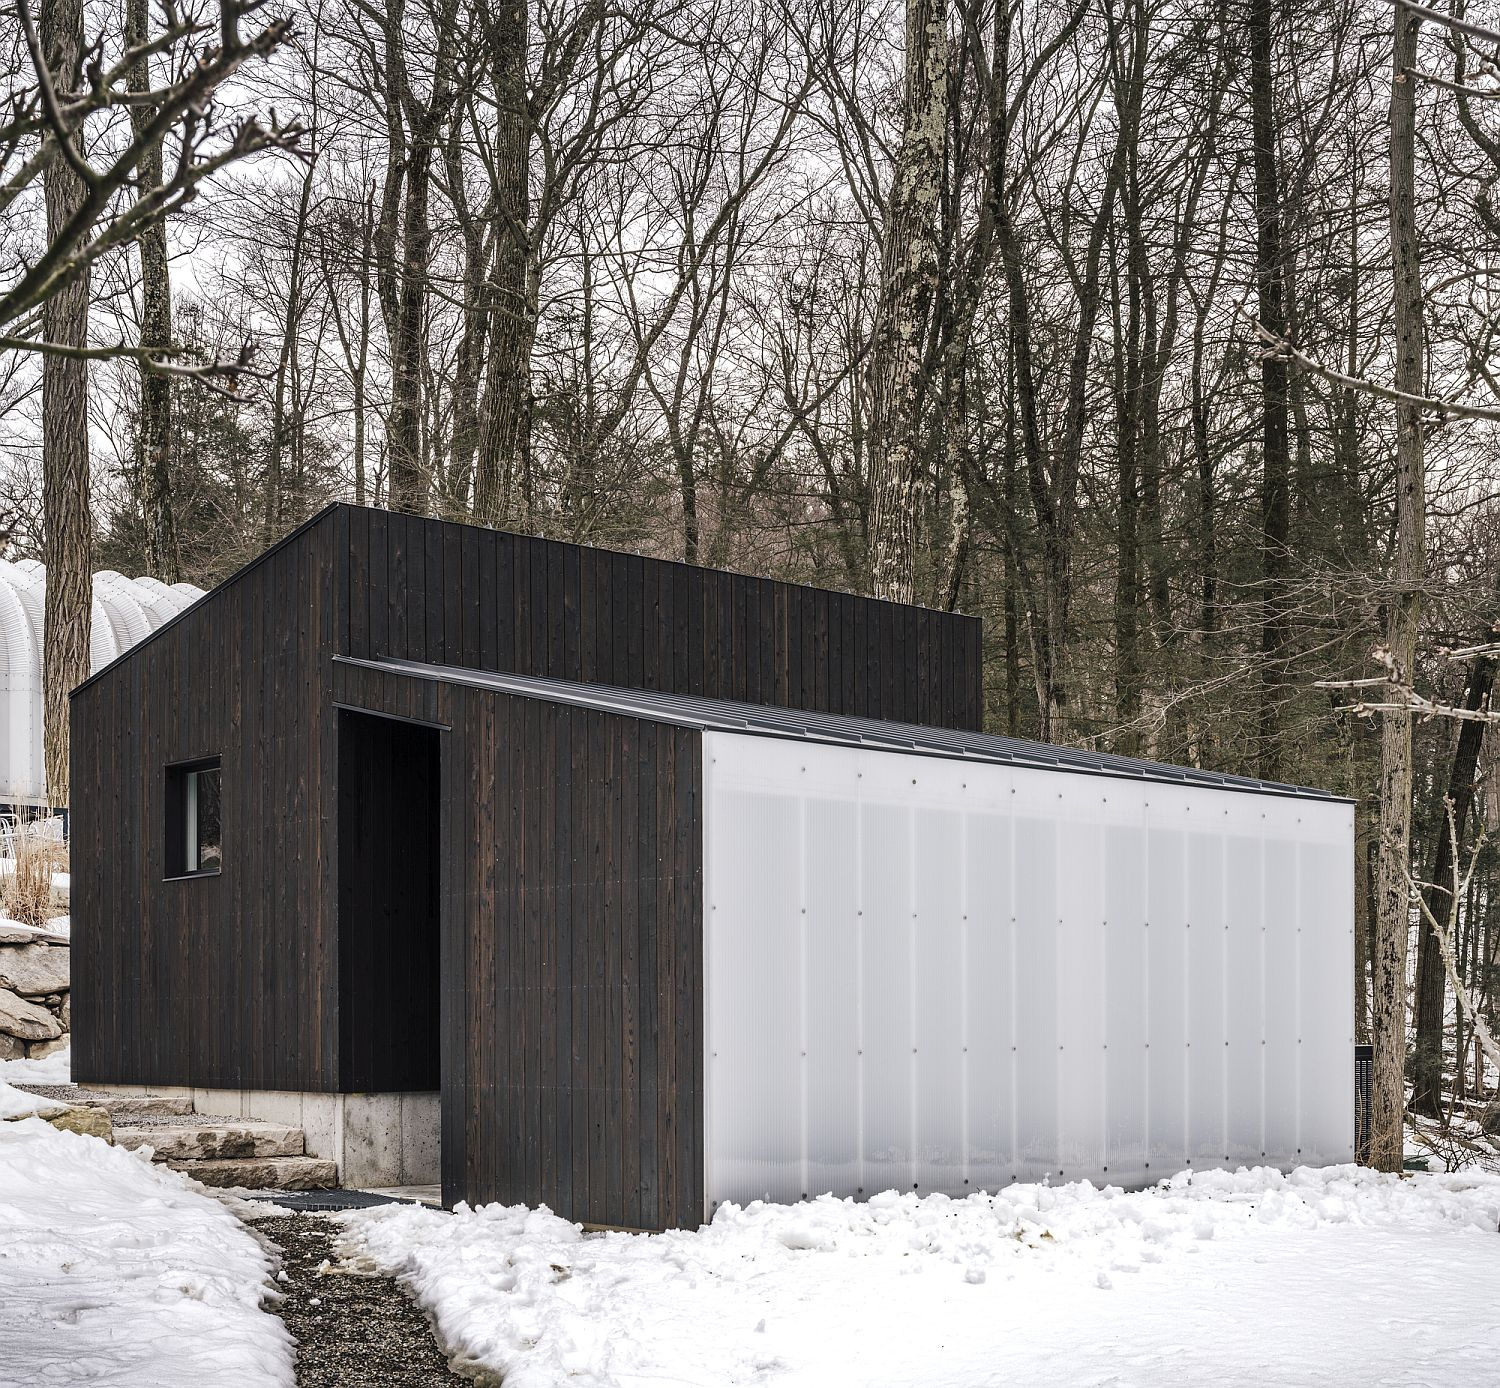 Polycarbonate-wall-brings-natural-light-into-the-structure-with-ease